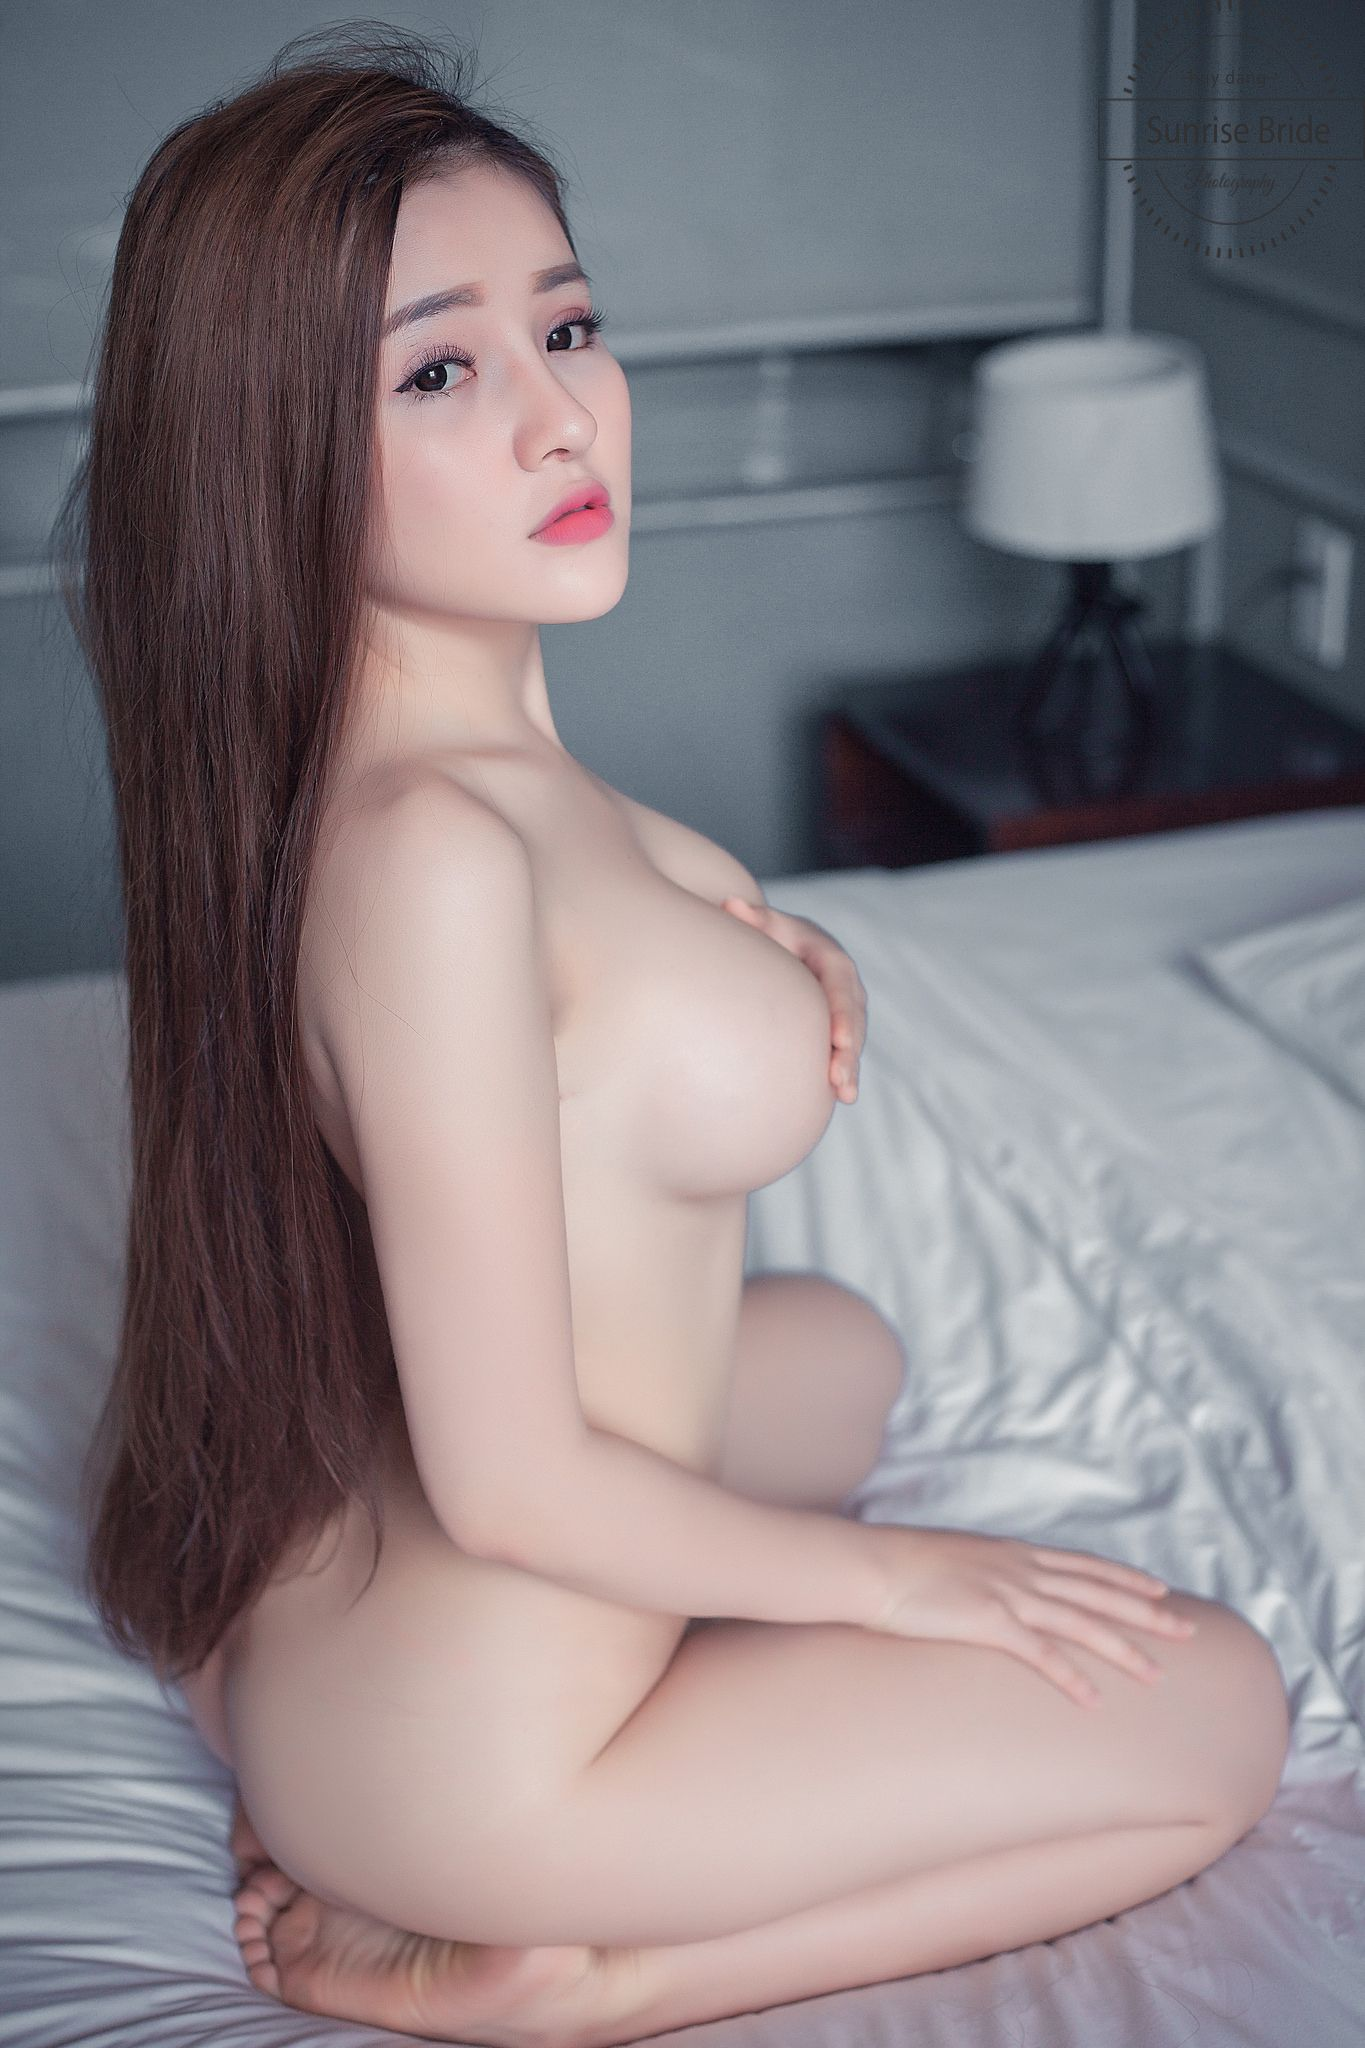 Cutest girl on internet nude are not